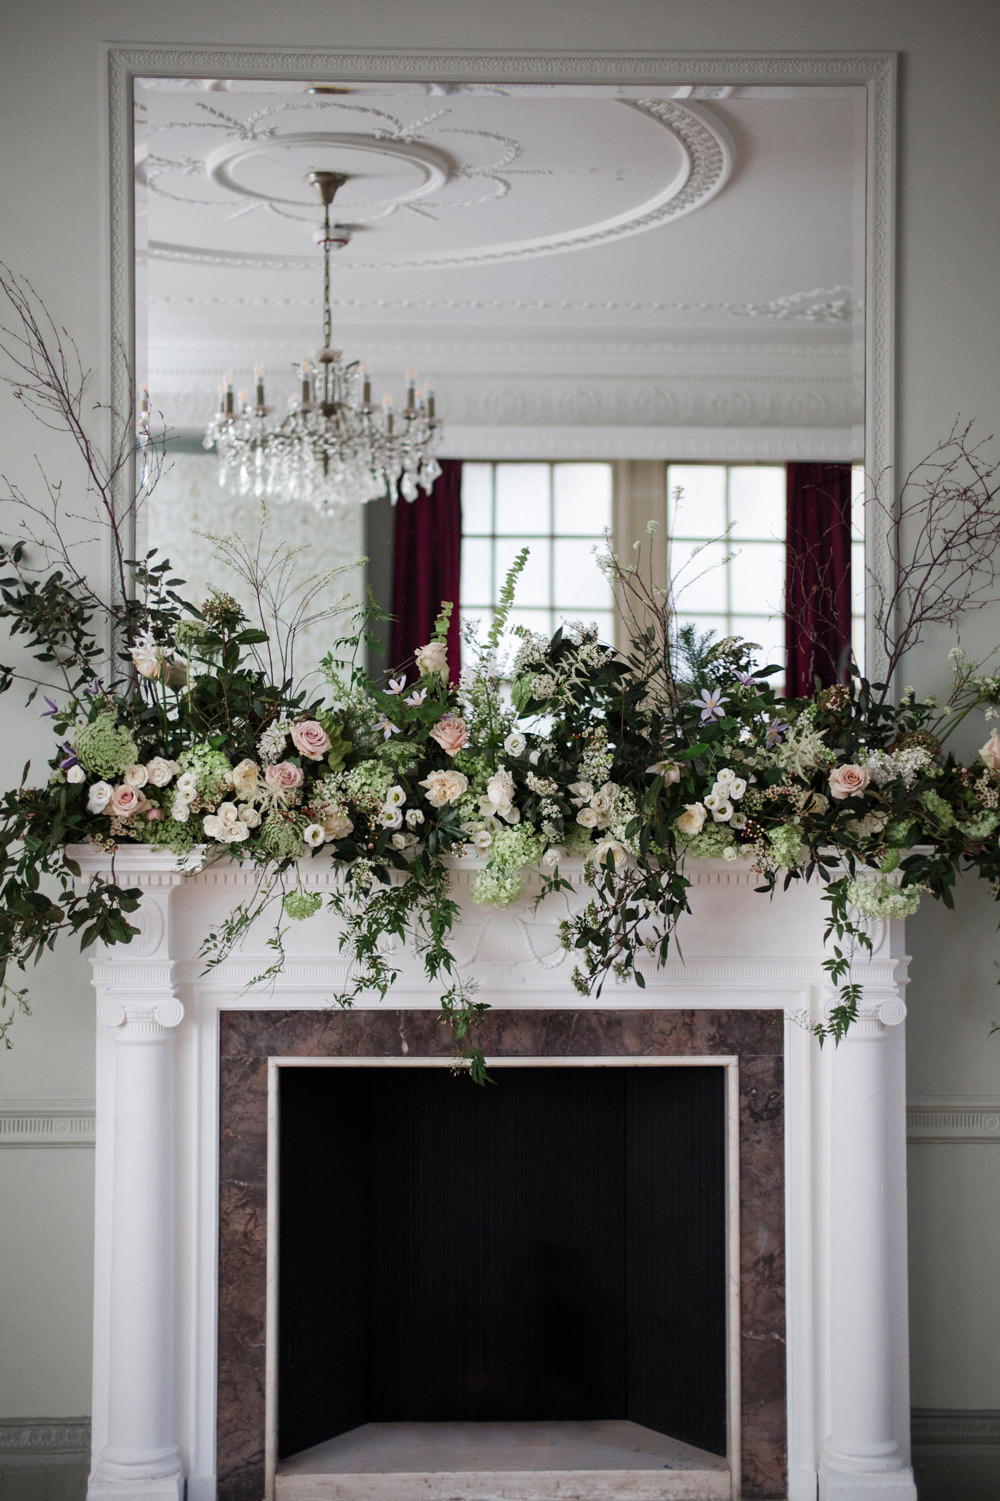 Fireplace Mantle Piece Flowers Greenery Foliage Blush Rose Whimsical Elegant Wedding Ideas Mandorla London